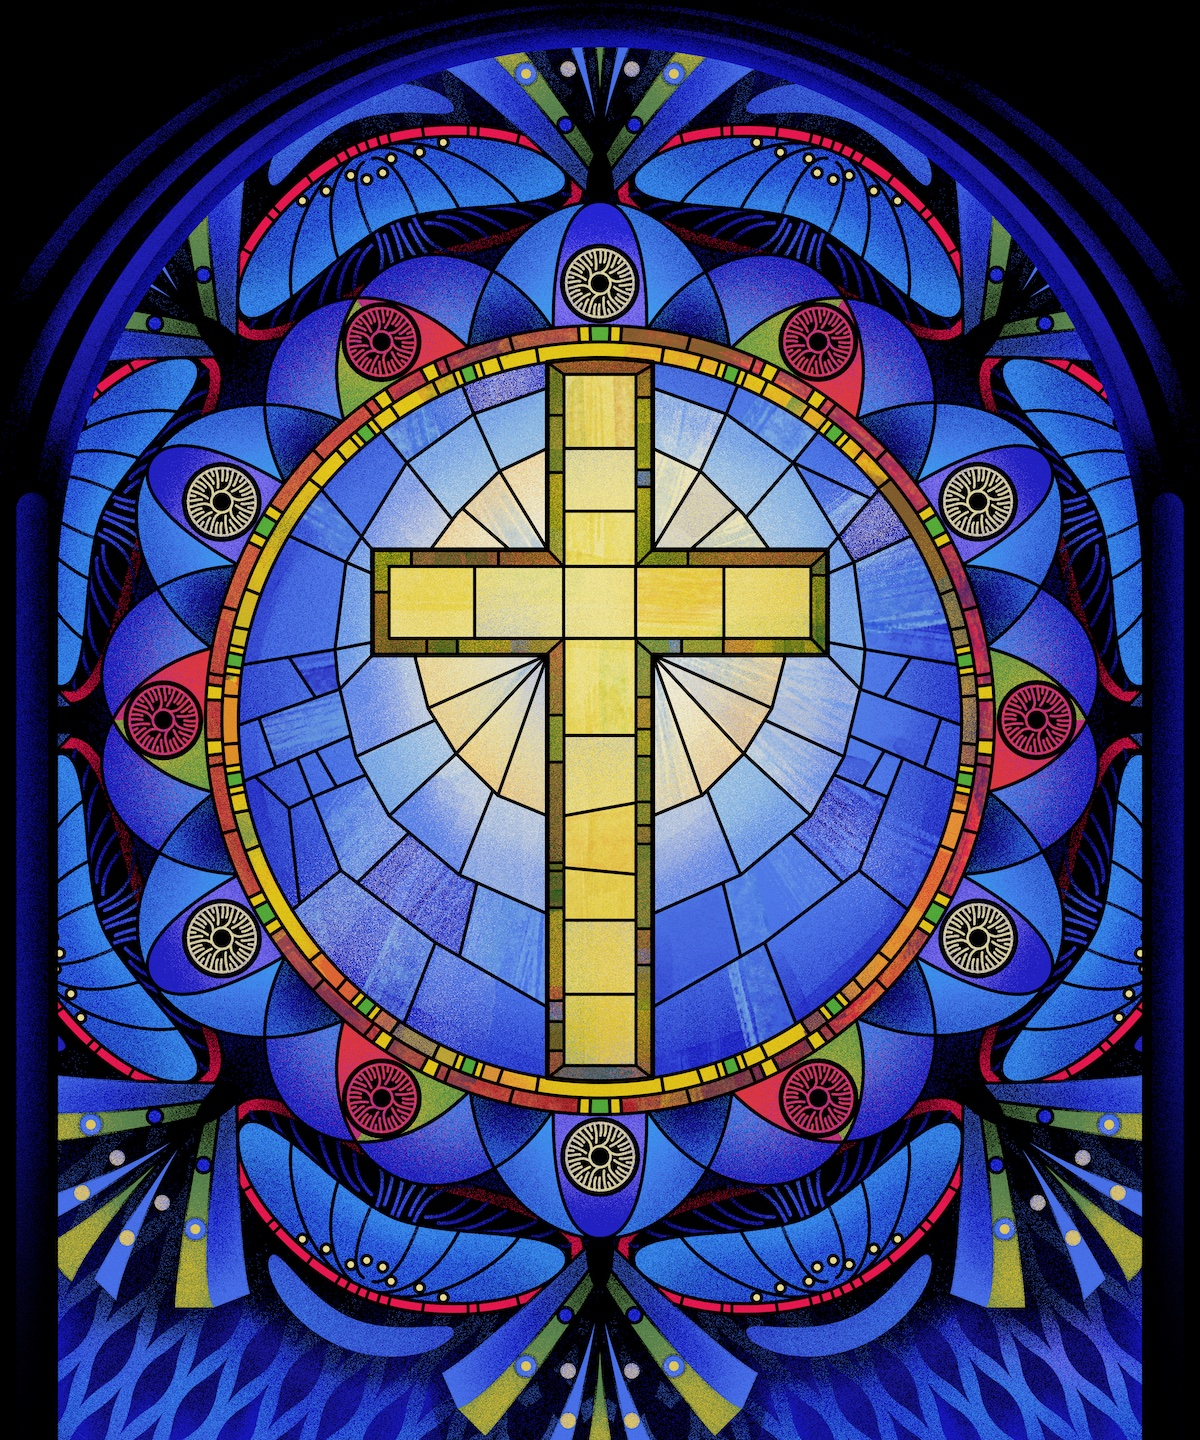 An illustration of a stained glass window with a cross in the center.